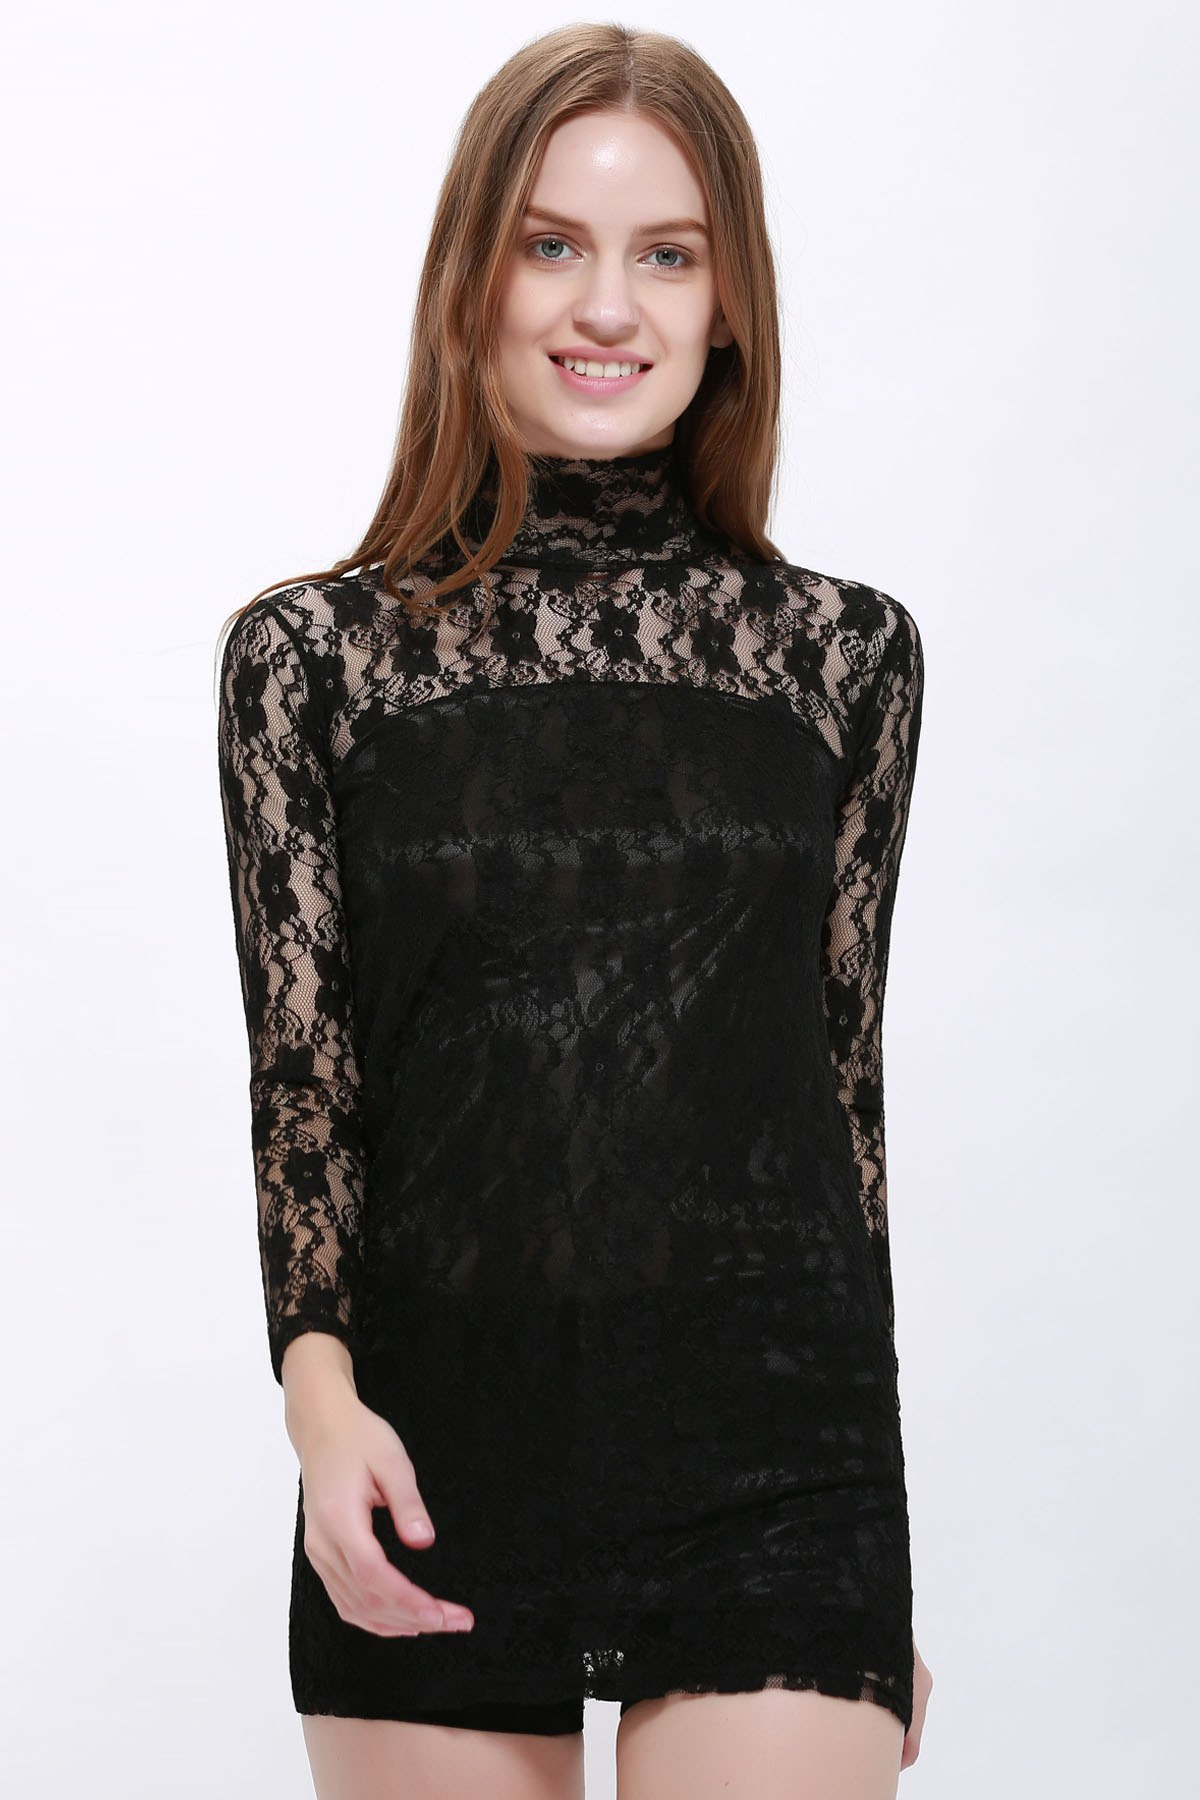 Slimming High Neck Ladylike Puff Sleeve Black Lace Women's Dress - BLACK ONE SIZE